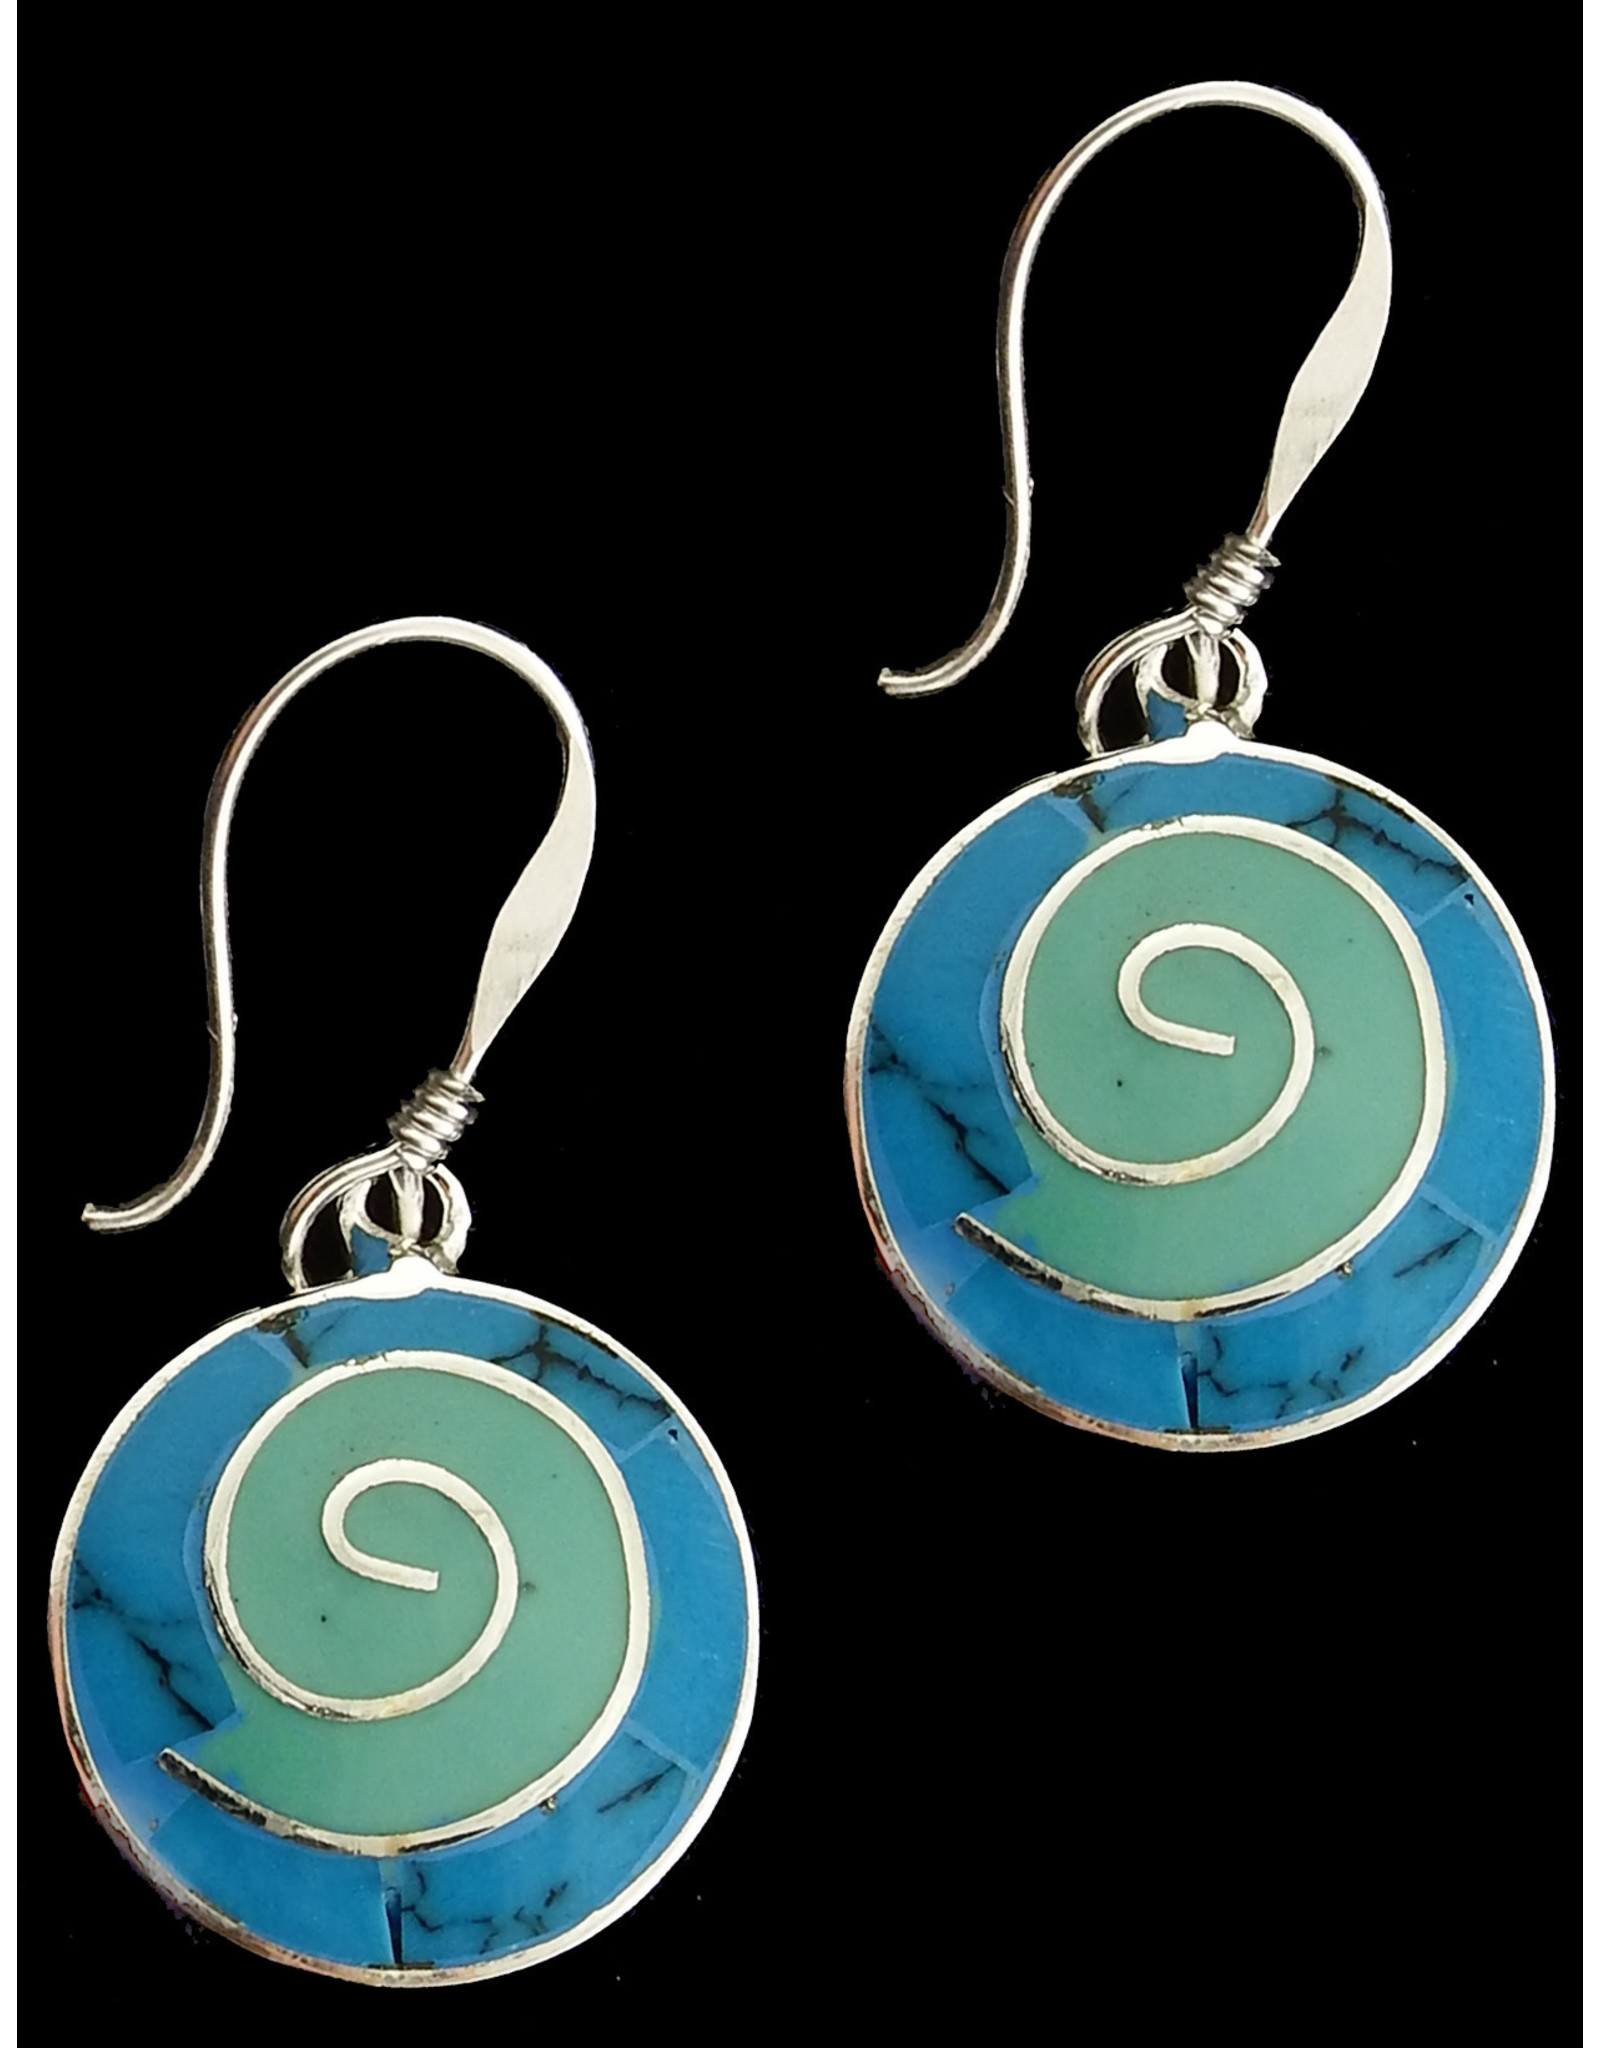 Alpaca Resin and Stone Earrings, Turquoise Spiral, Mexico